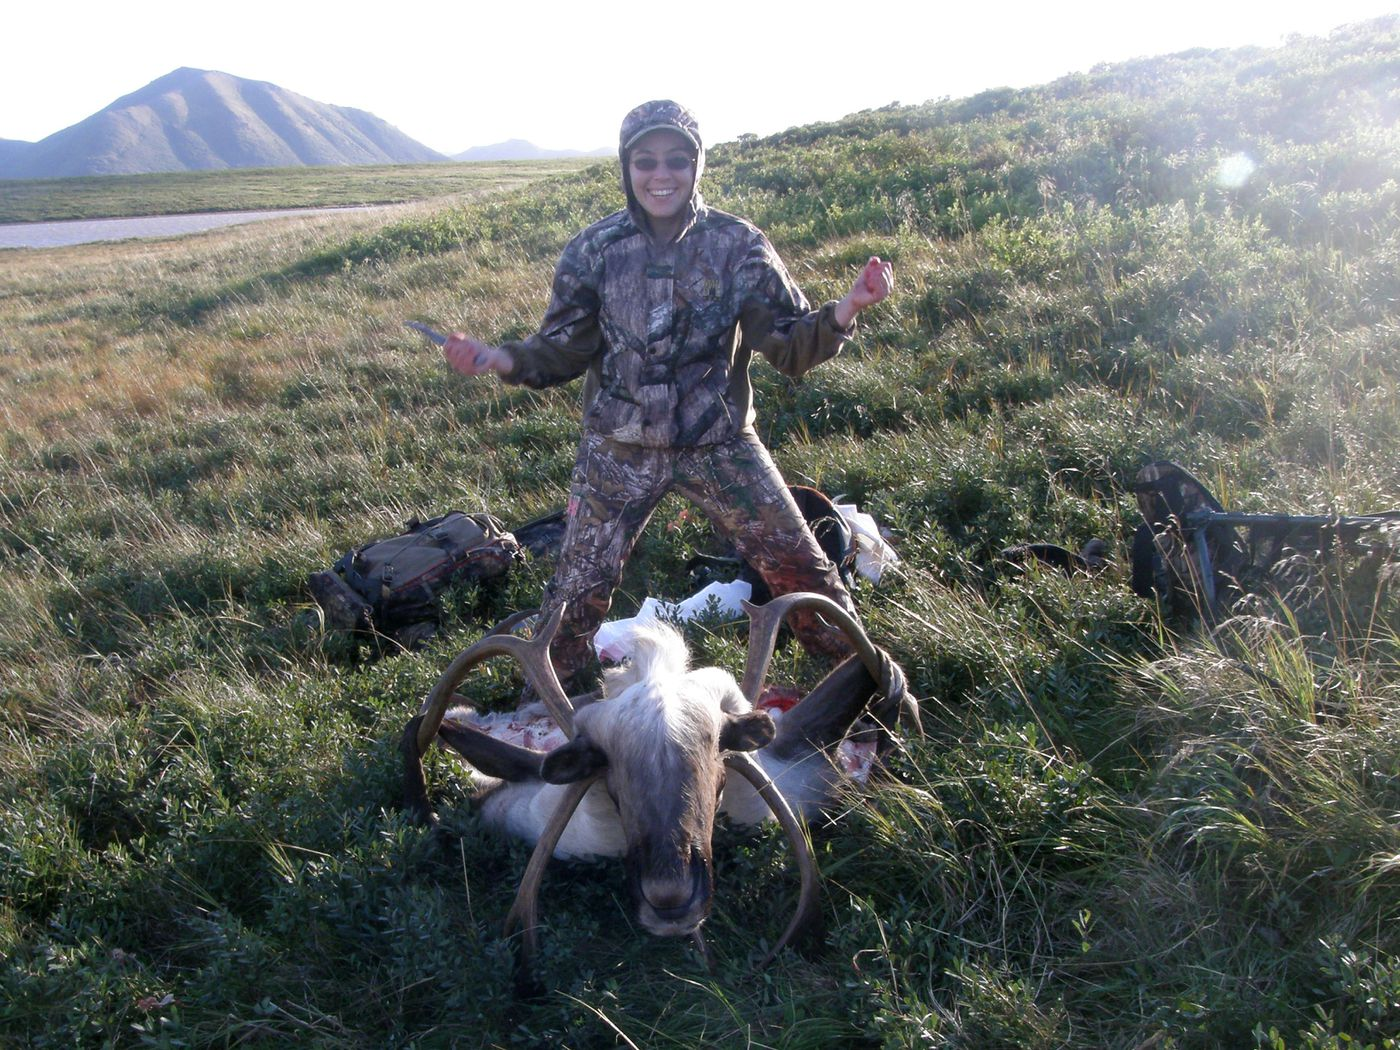 Amanda Alaniz skins a caribou she hunted in preparation for a half-body mount taxidermy piece on Aug. 30, 2015. (Photo provided by Amanda Alaniz)